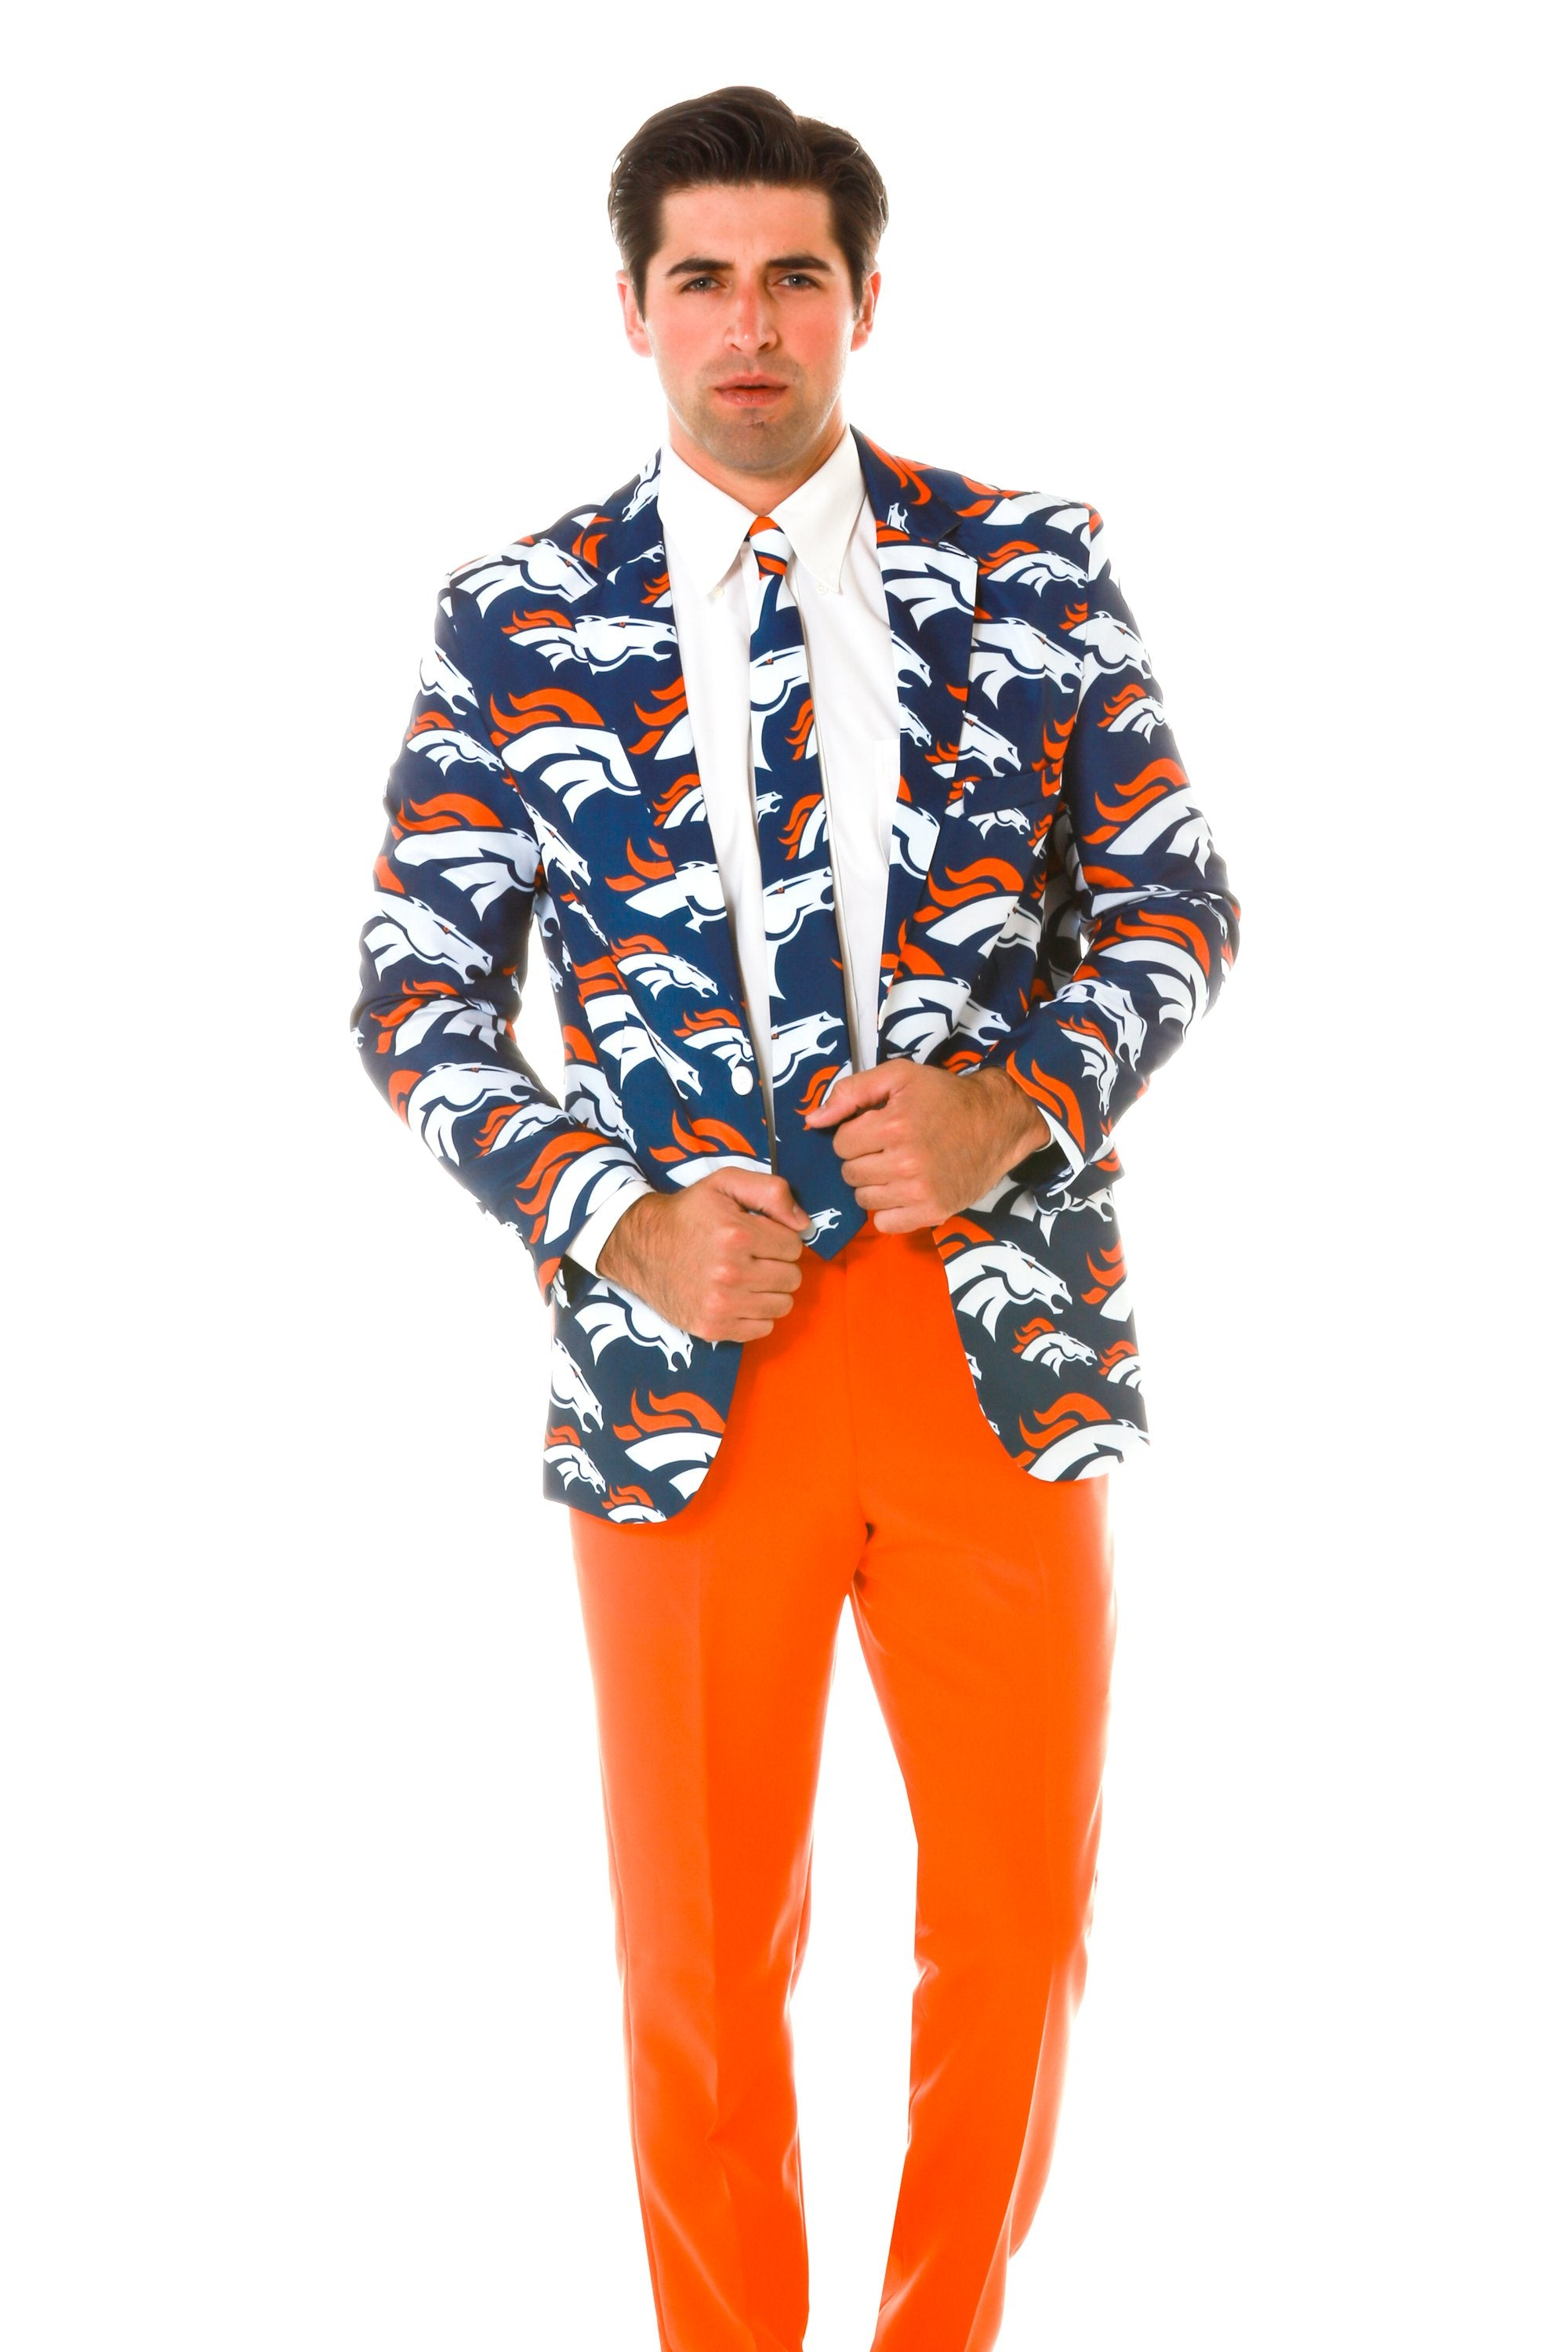 Denver Broncos Suit Jacket